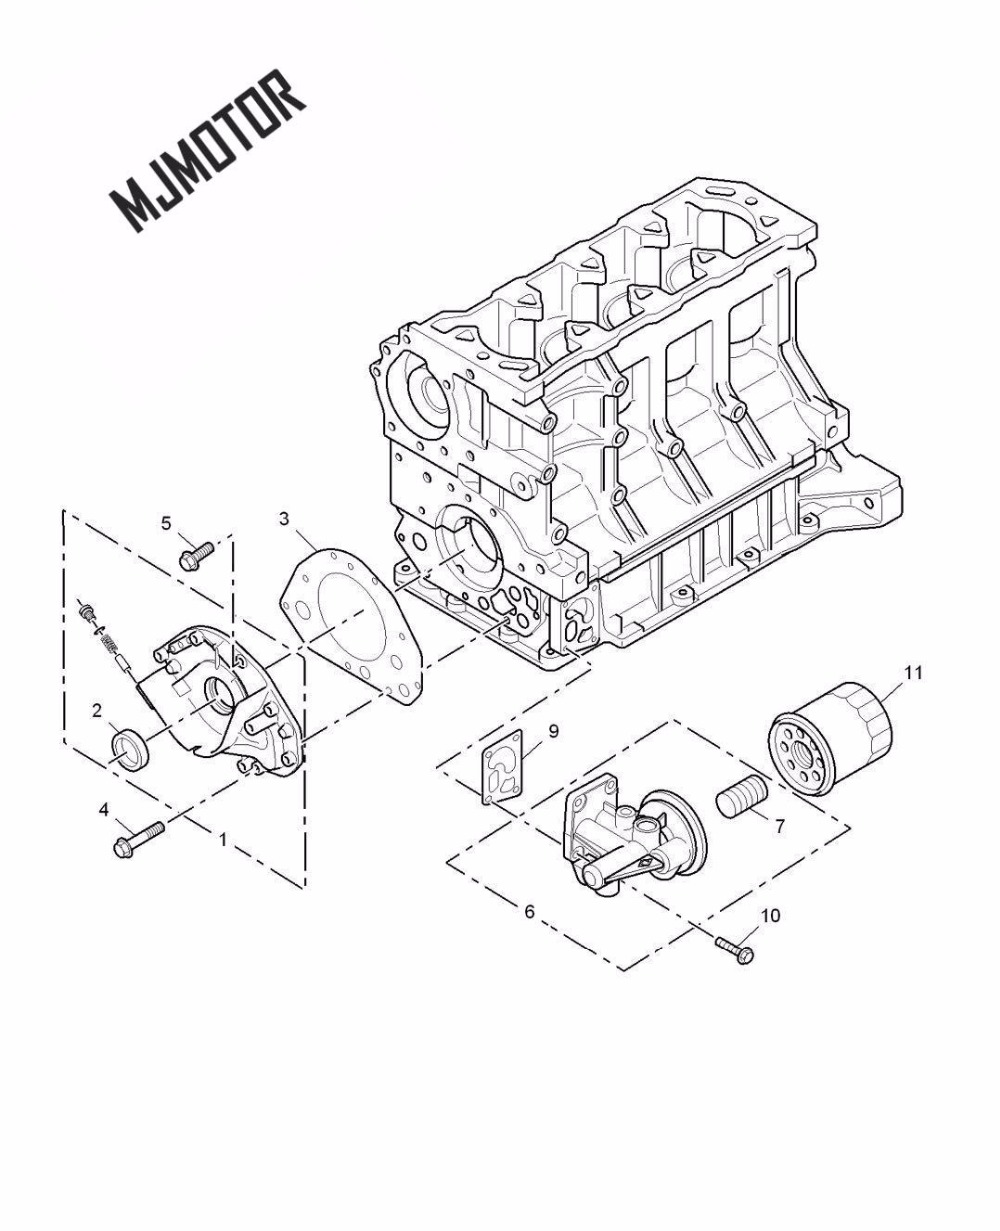 hight resolution of vw 2 0t fsi engine diagram wiring library 1 8t engine diagram oil pump automotive wiring